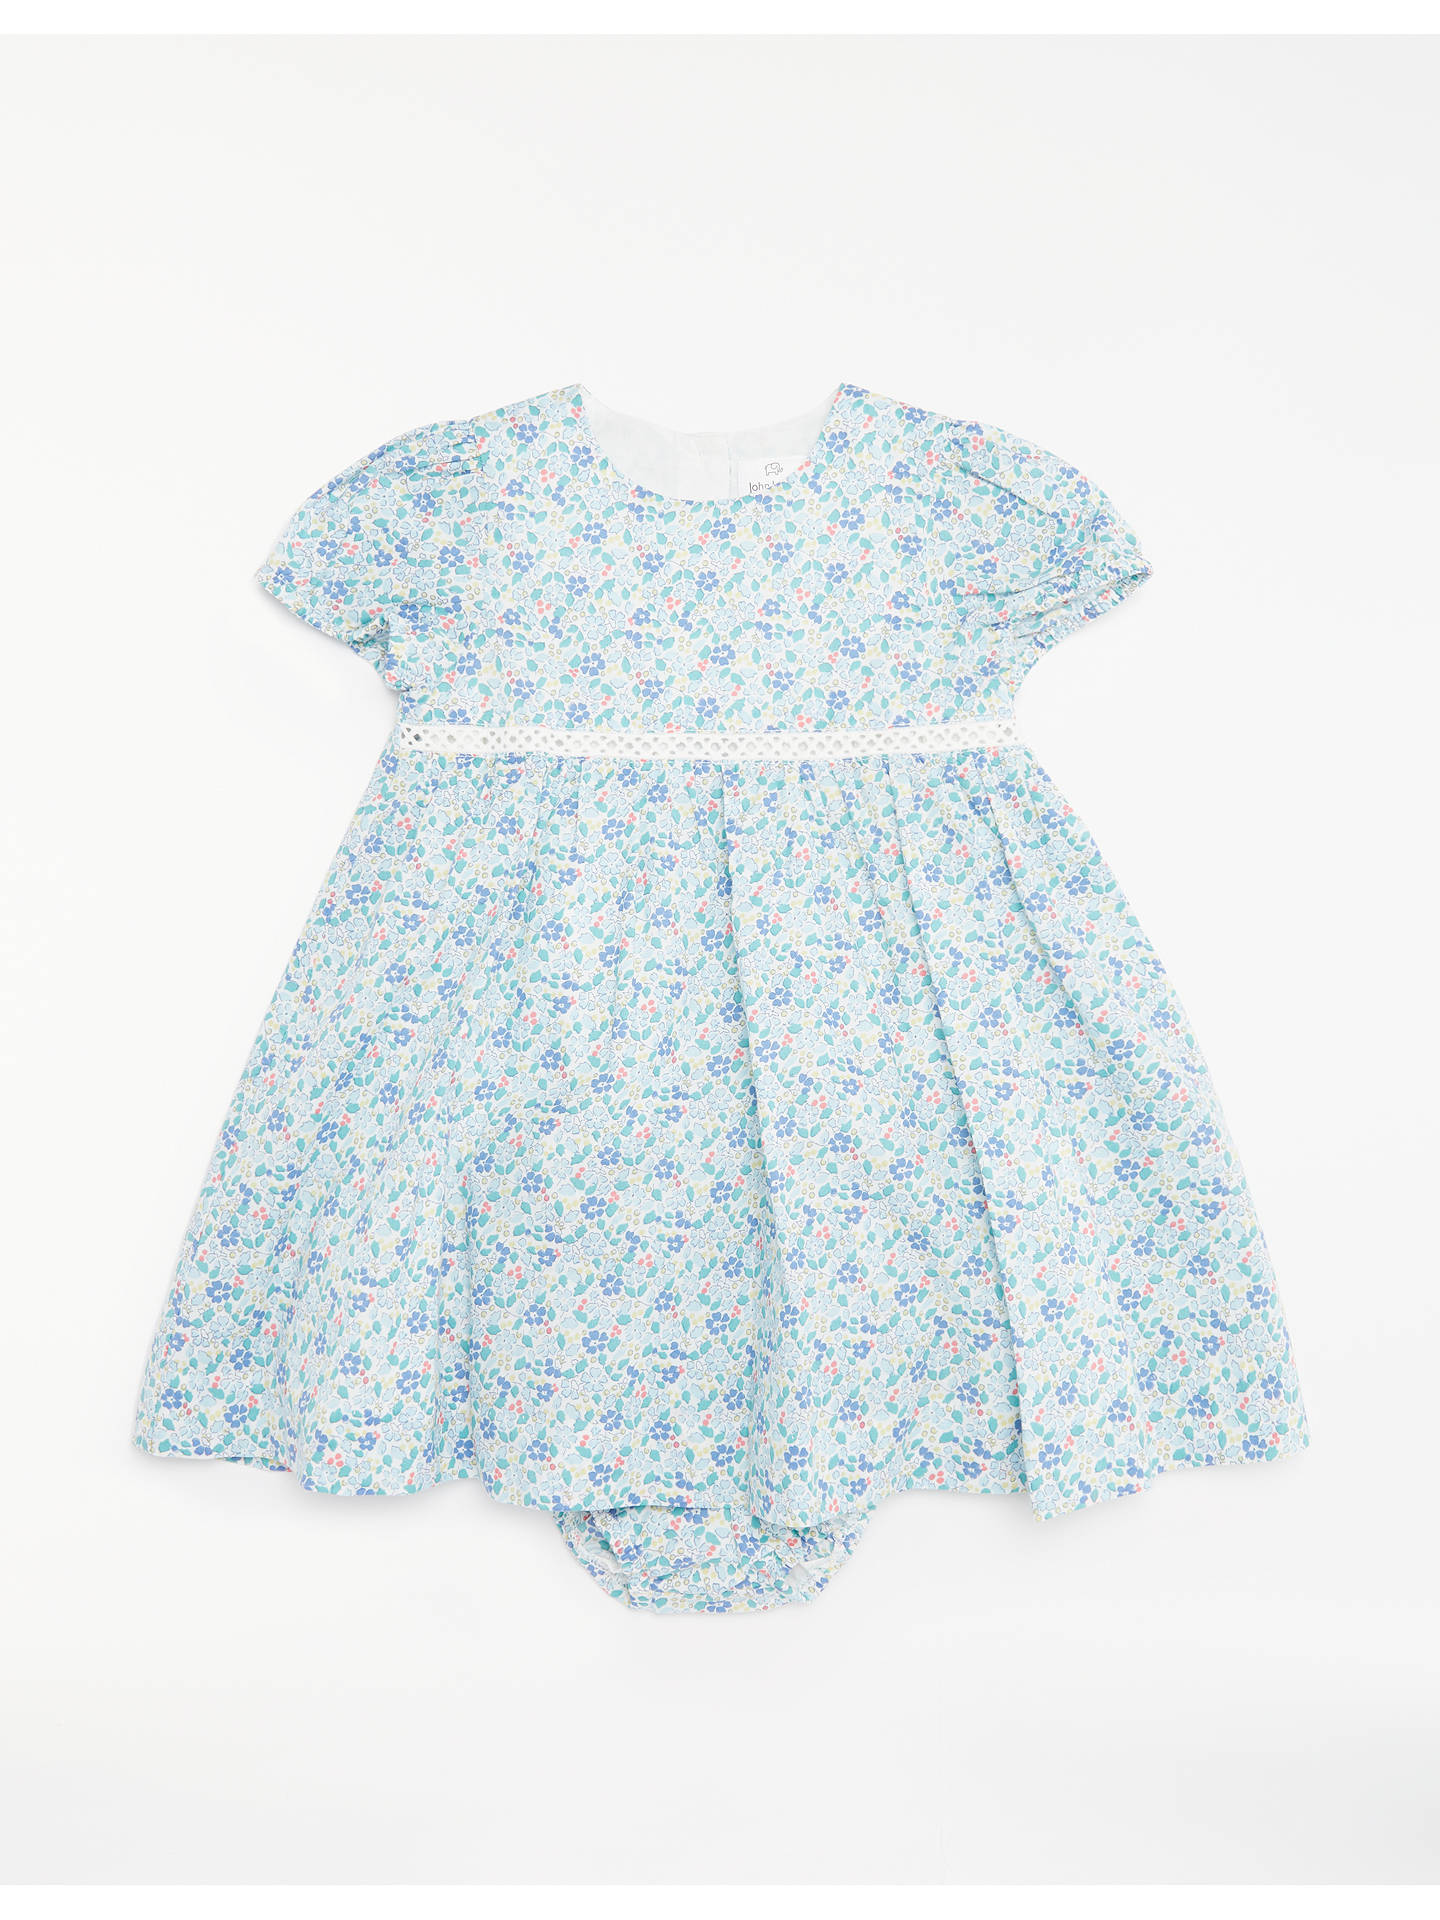 9bccf867a Buy John Lewis & Partners Baby Layette Floral Dress and Knickers Set,  Multi, Newborn ...